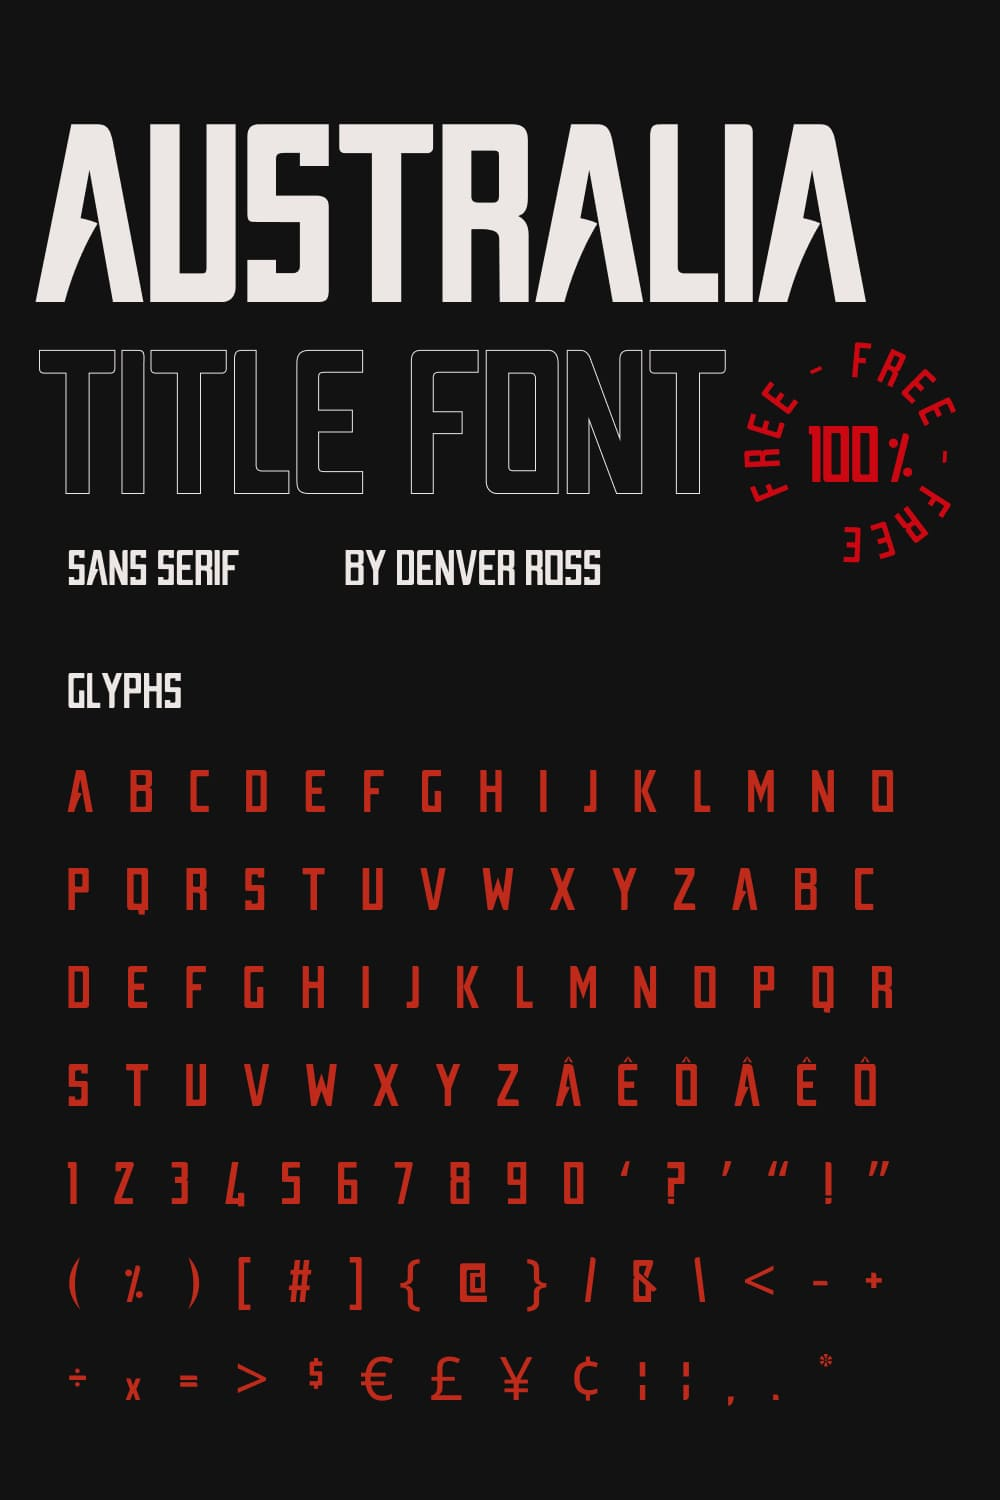 Soft font with sharp details. This is a game of contrasts.